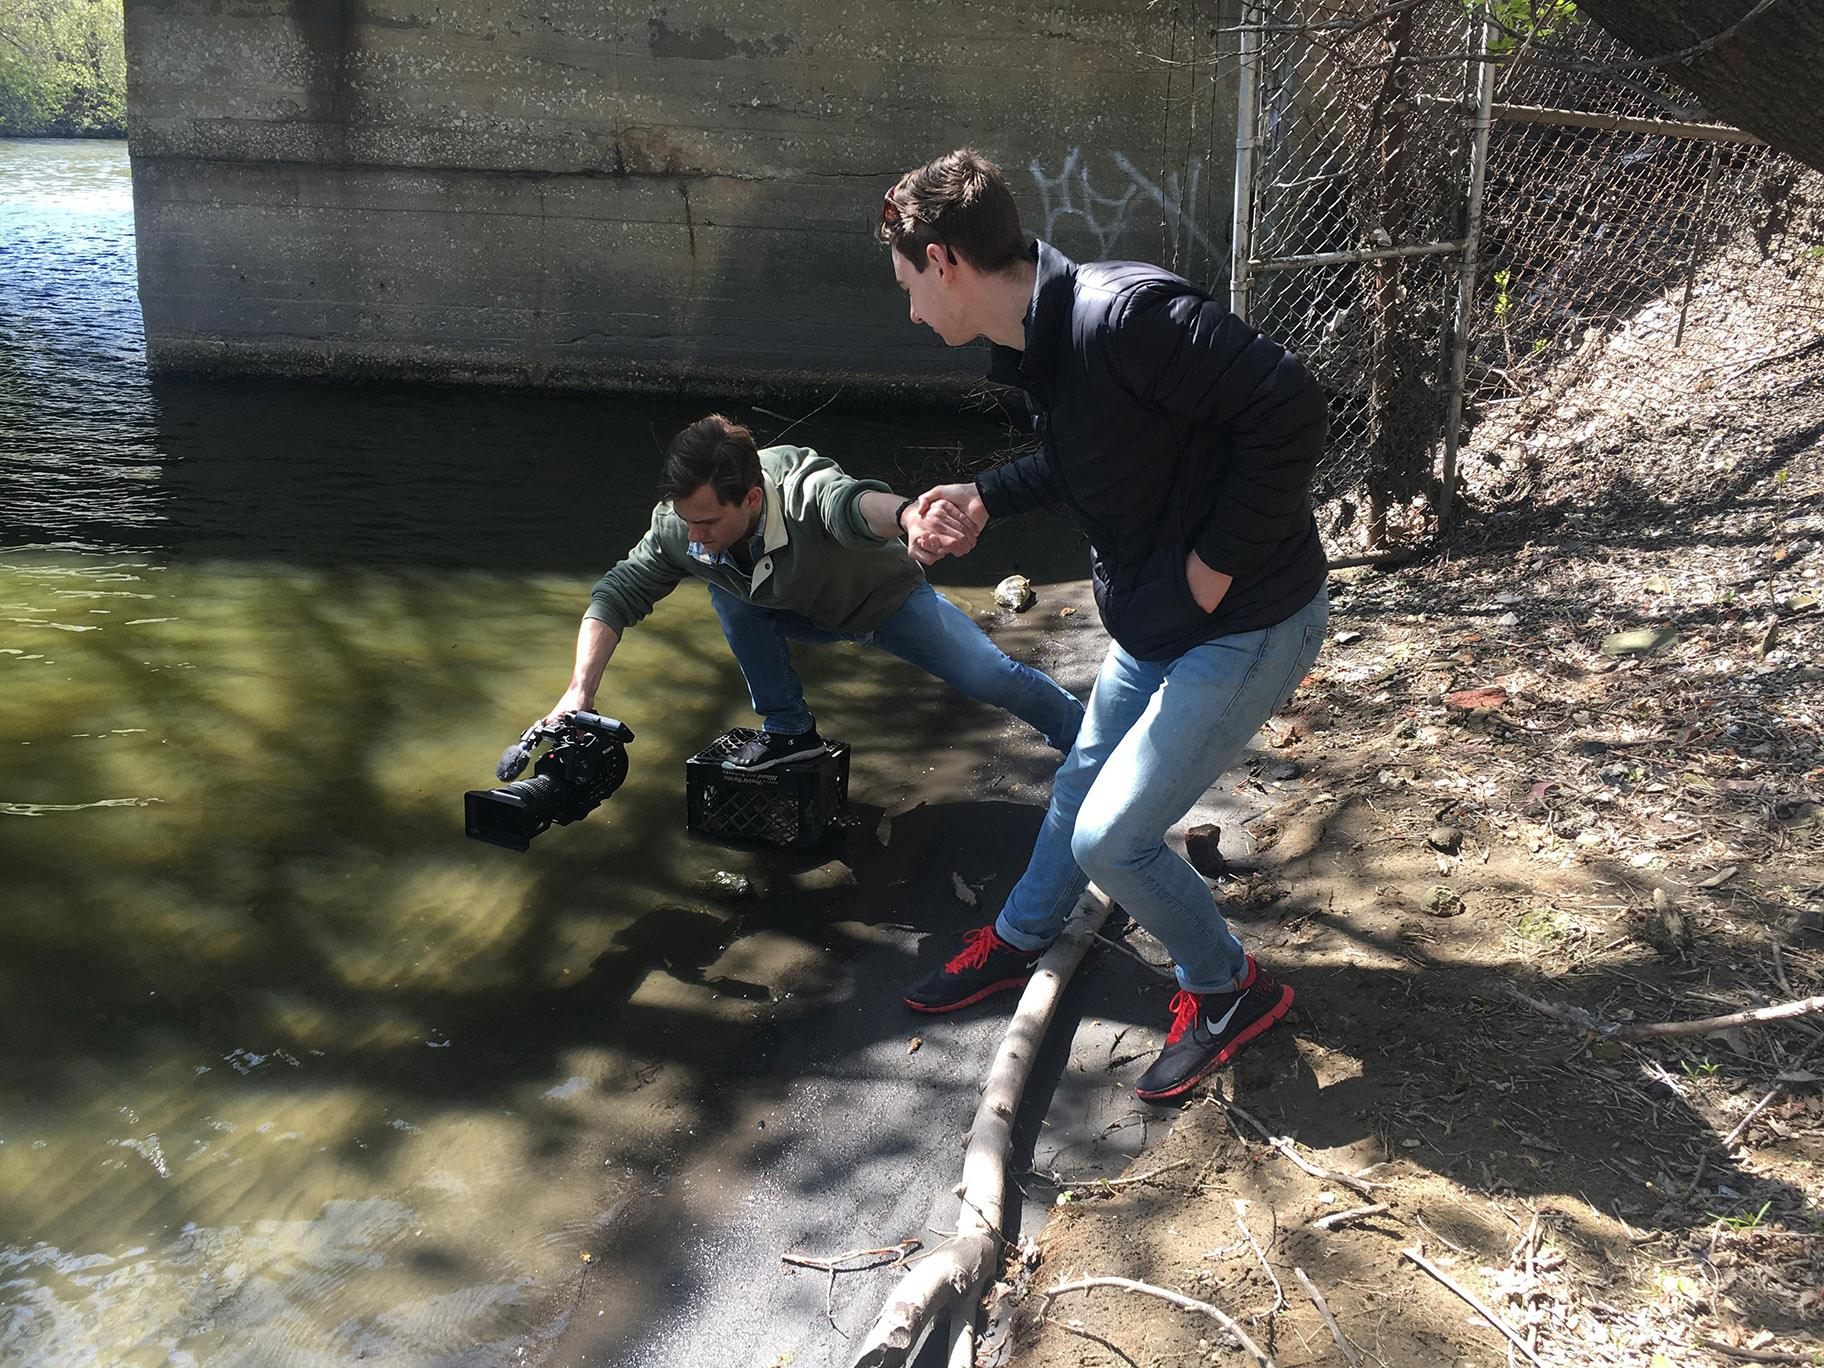 DePaul University student journalists shooting video of the bubbles in the creek.